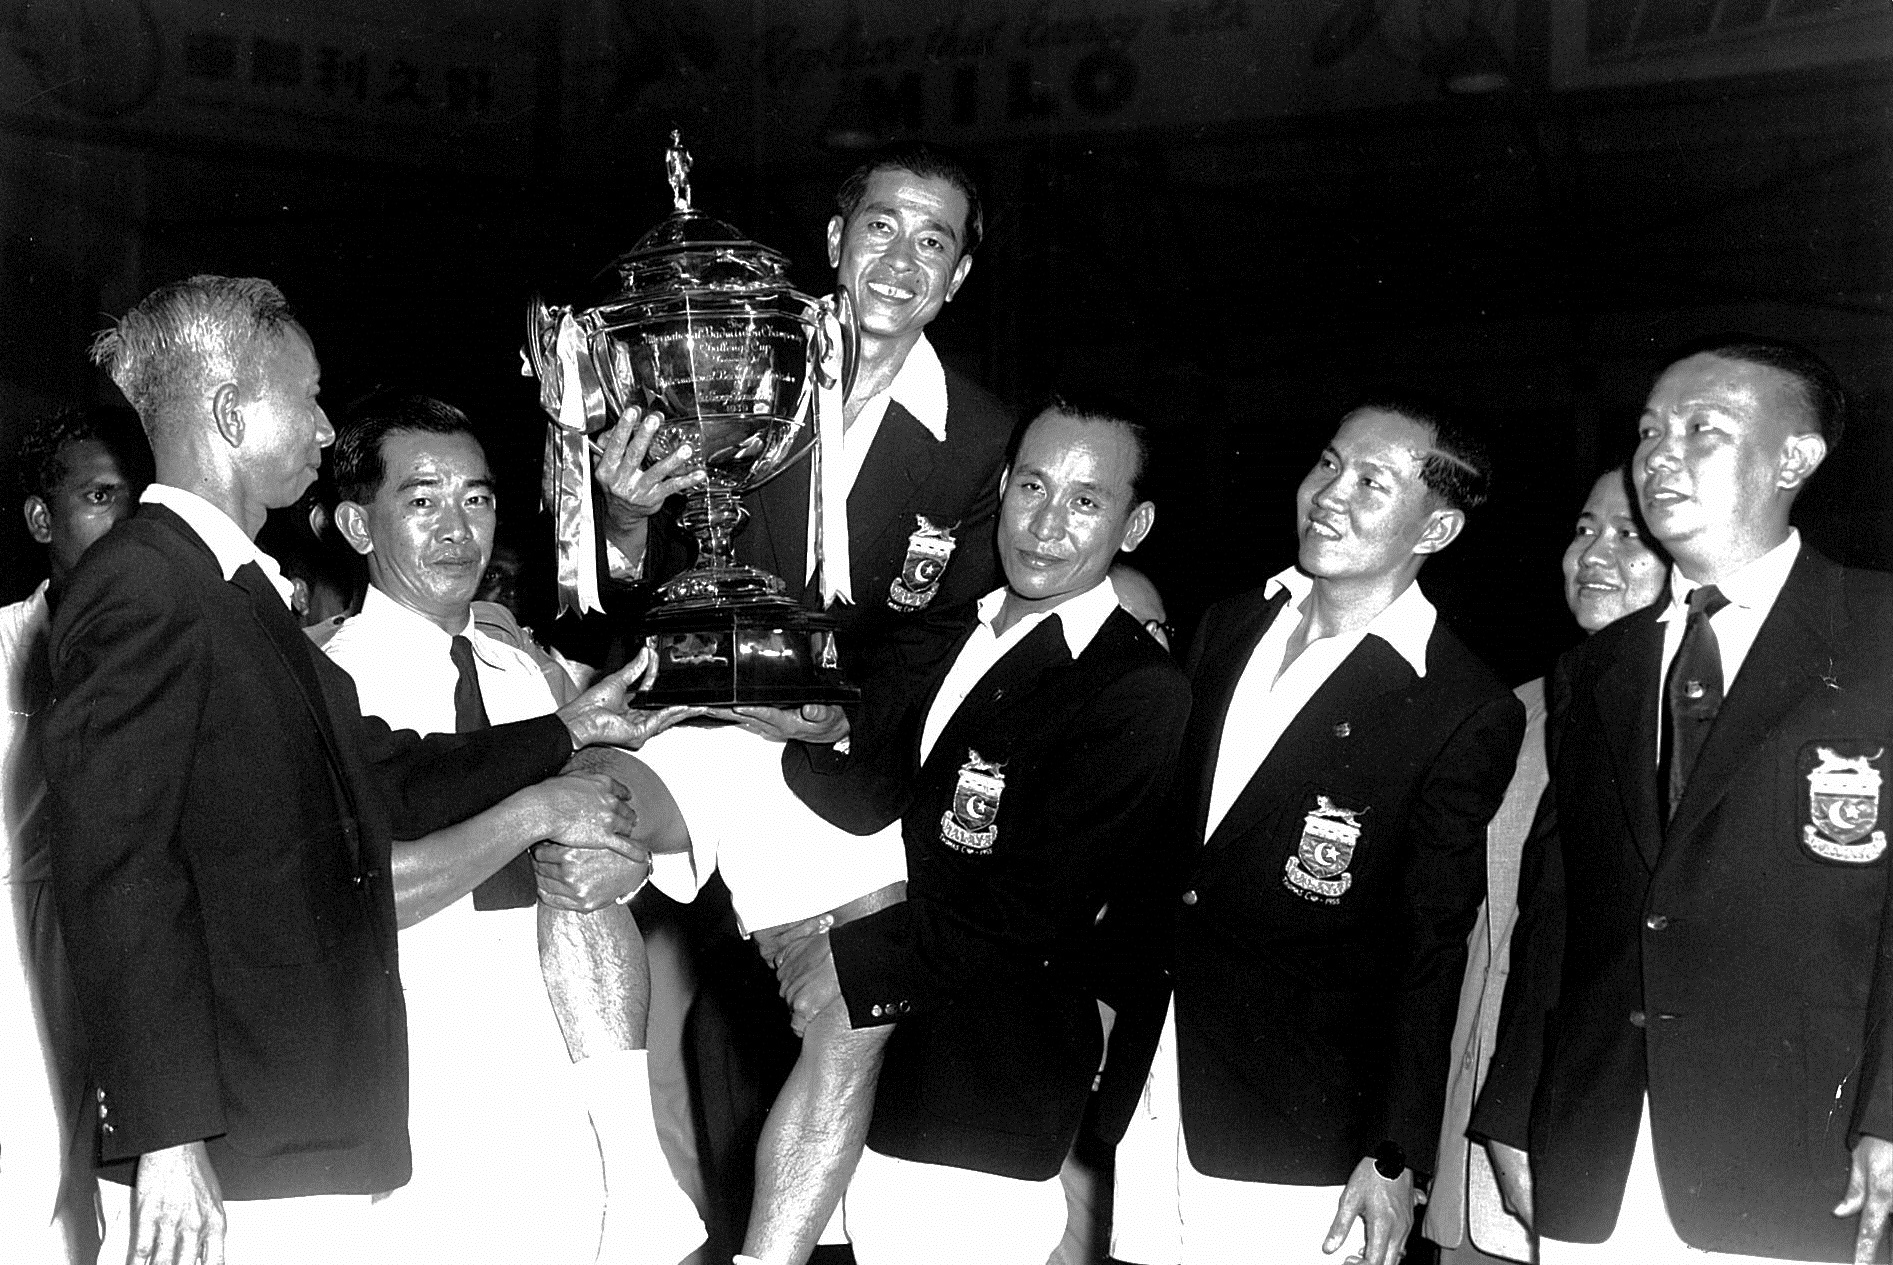 Malayans carry wong peng soon with thomas cup trophy in 1952 after beating  singapore 7-2. ong poh lim 4th from r - picture by straits times singapore